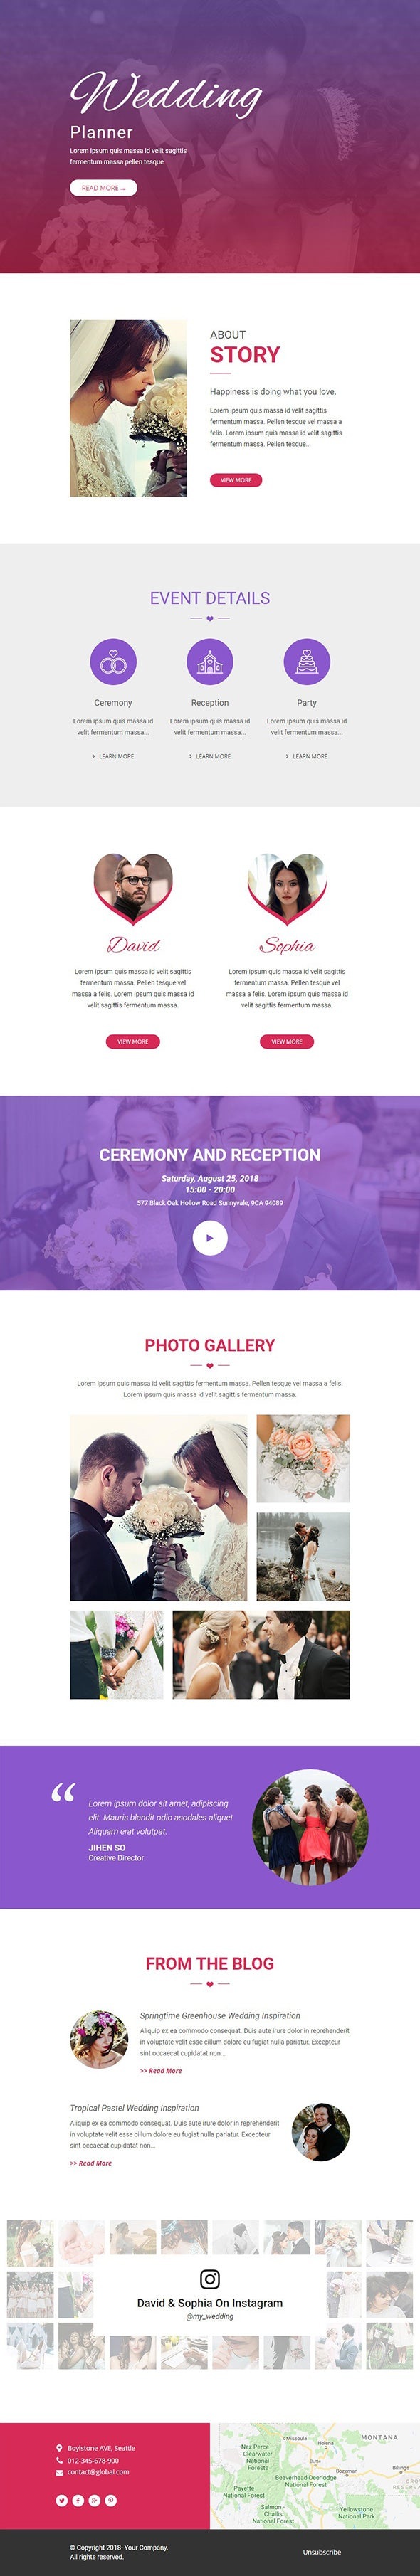 Free Wedding Planner Email Template